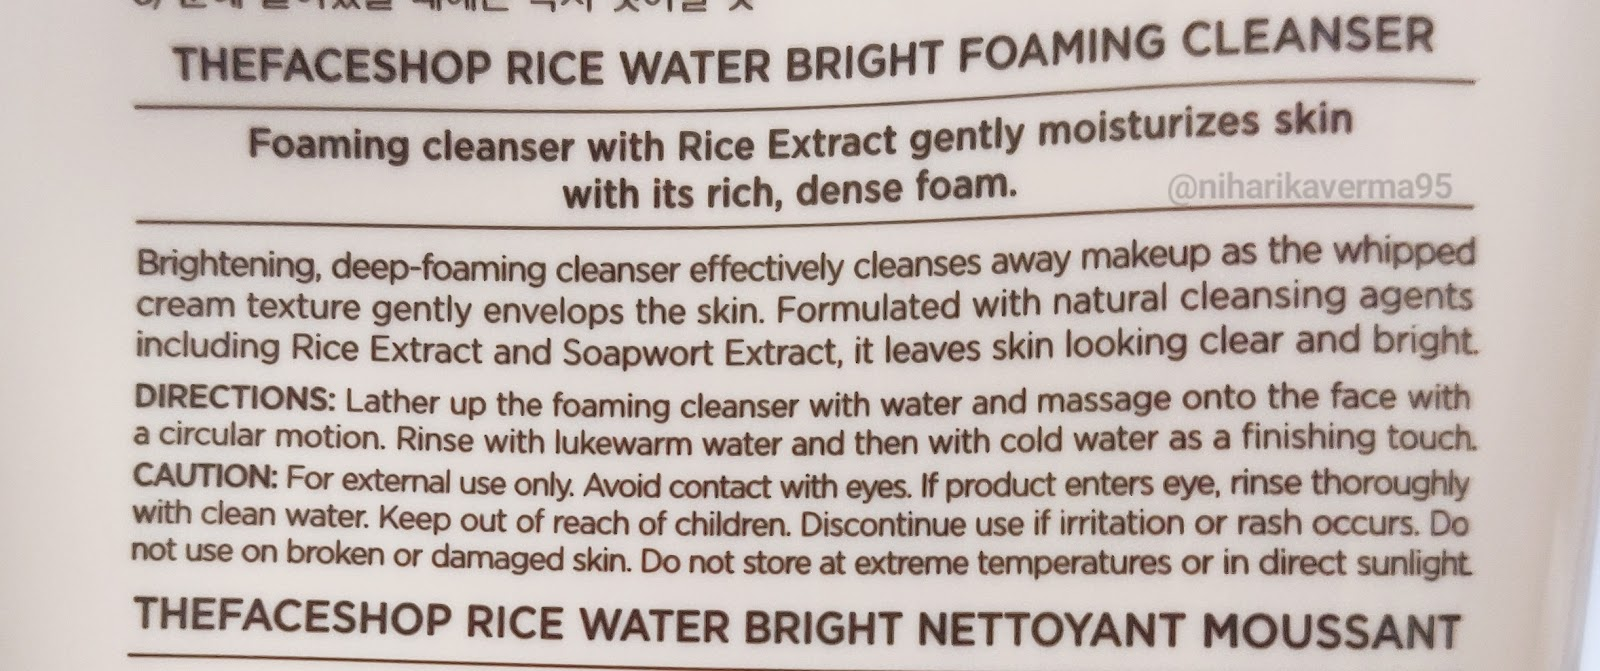 About The Face Shop Rice Water Bright Cleansing Foam - Review